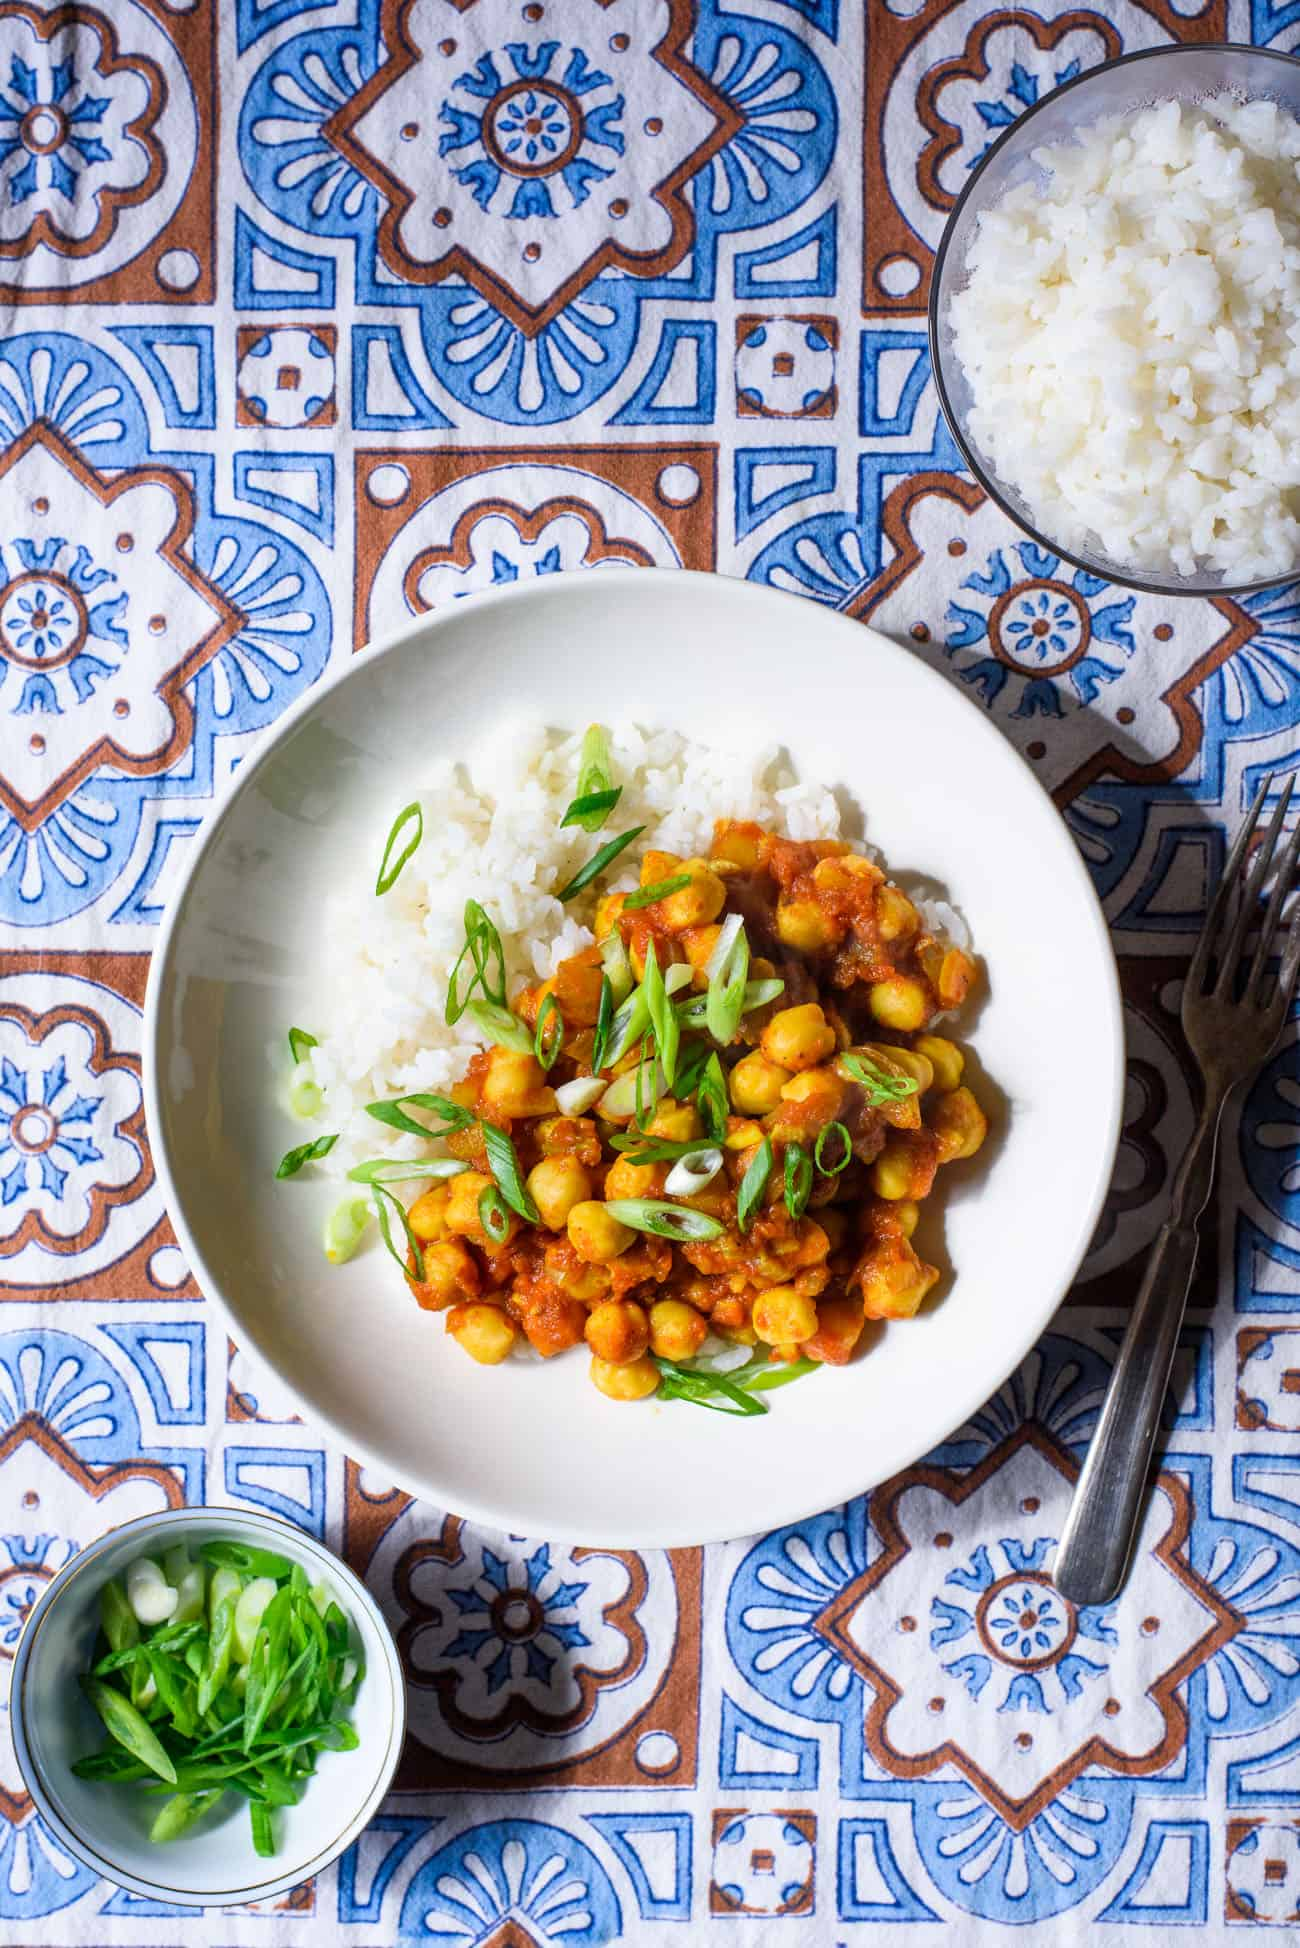 Bowl of chana masala on an Indian-patterned tablecloth next to rice and scallions